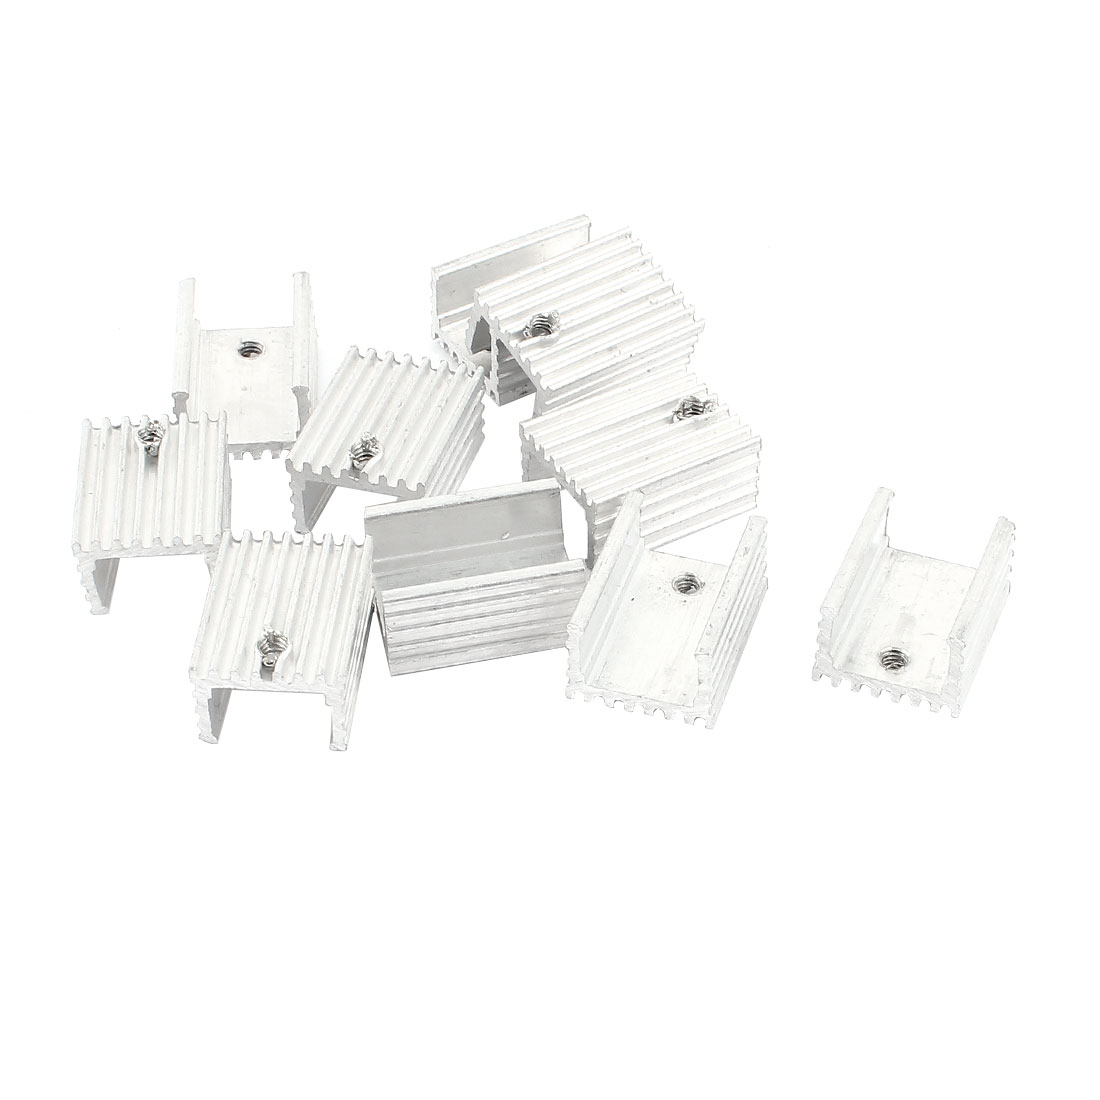 10 Pcs Silver Tone Aluminum Heat Sink 20x15x10mm for TO-220 Transistors